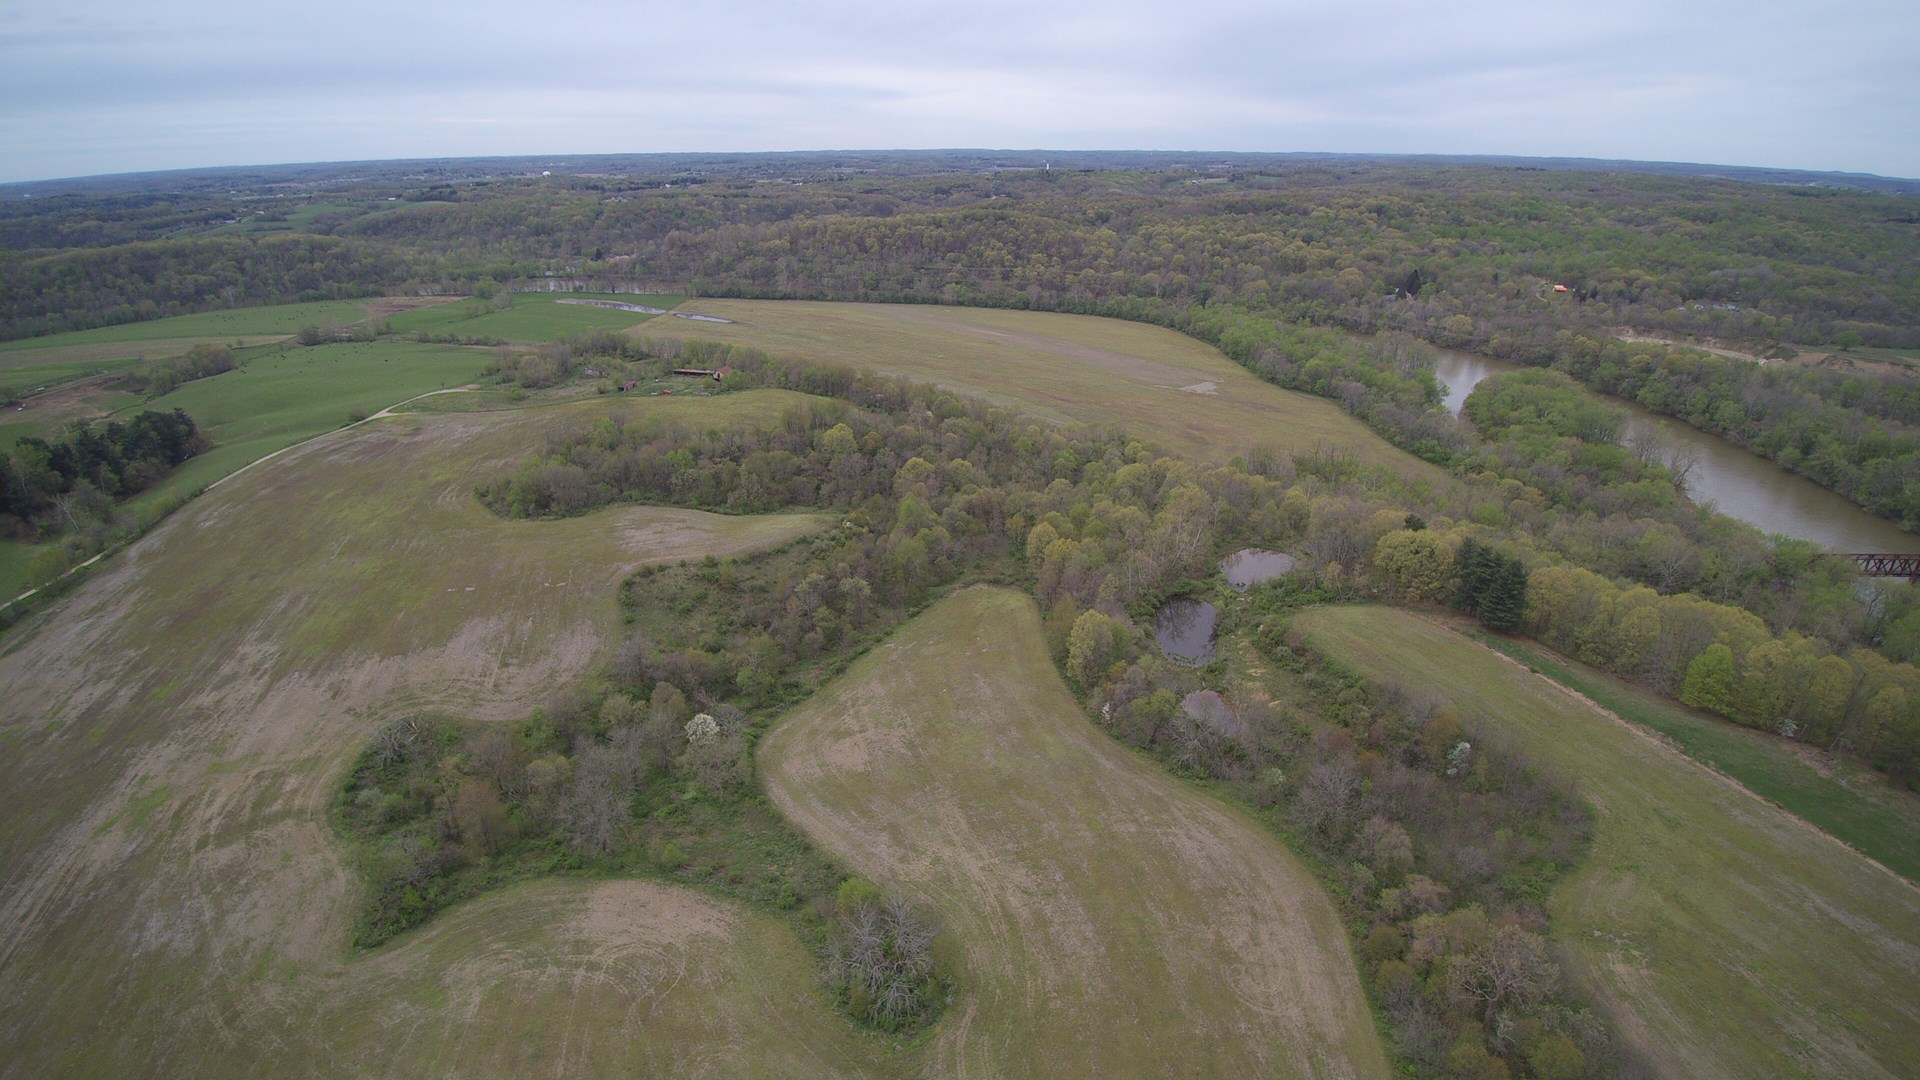 Muskingum River Frontage | Tract 7 A & B | 127 +/- Acres | Sand & Gravel Reserves | Farmland/Tillable